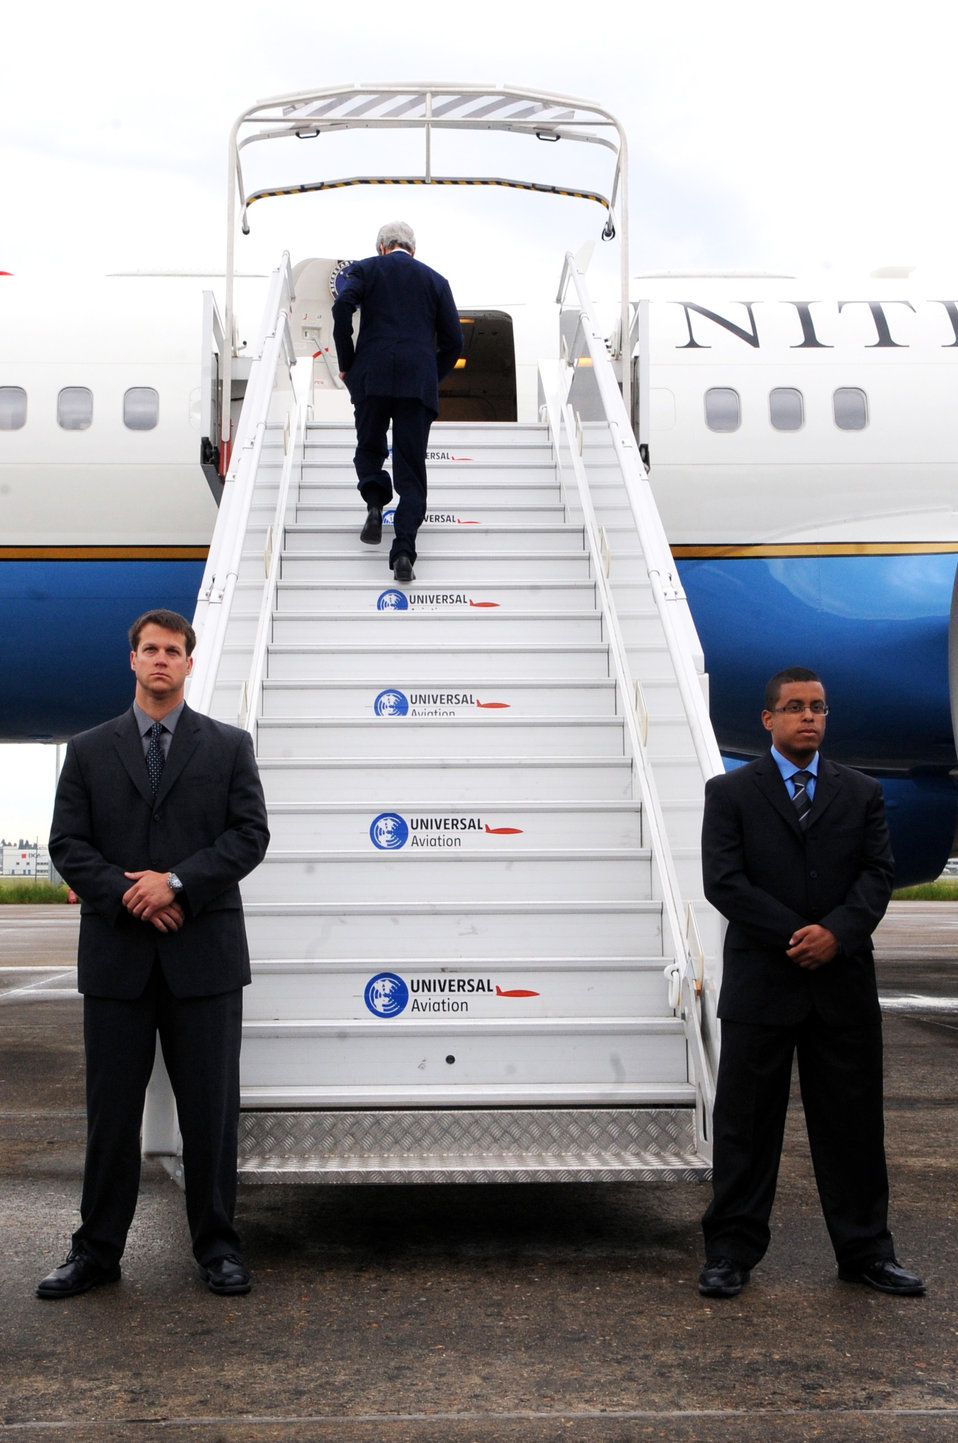 Secretary Kerry Climbs the Stairs of the Plane